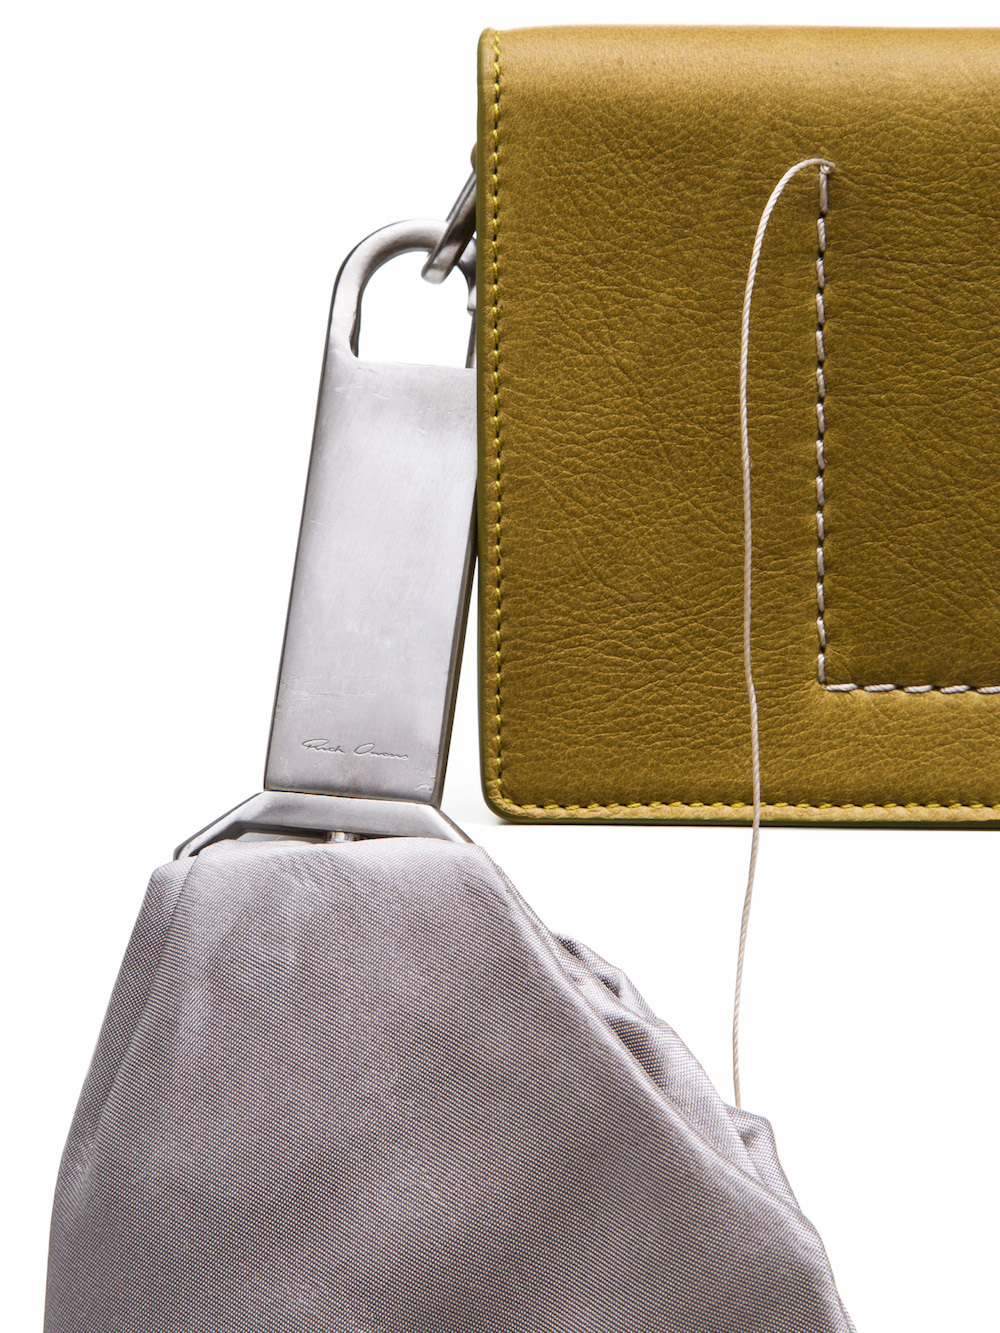 RICK OWENS SASHED MEGA ADRI BAG IN ACID YELLOW